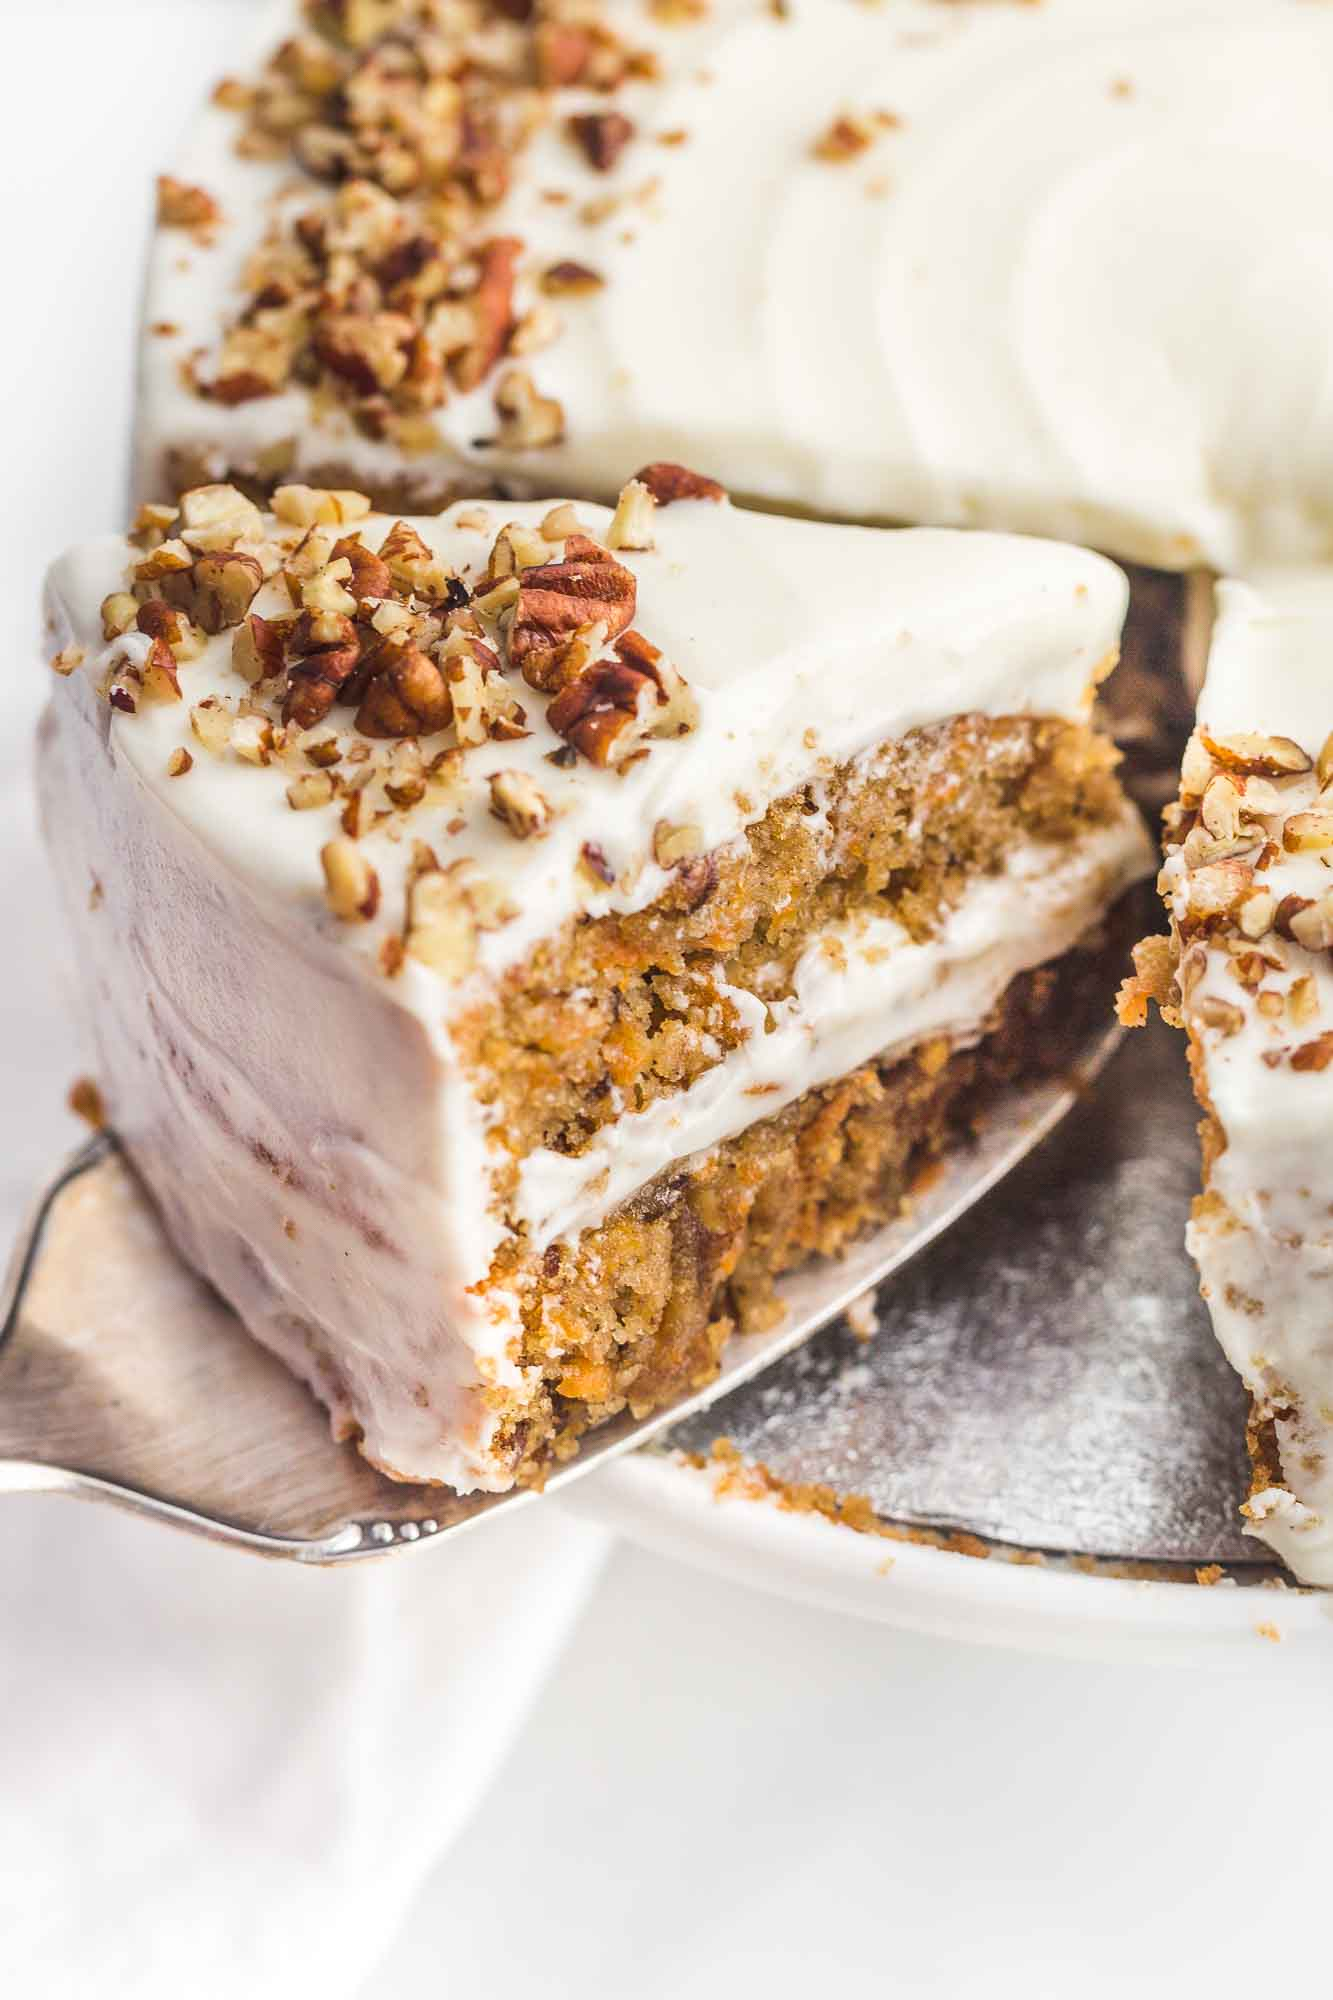 Side view of the gluten free carrot cake slice with a server.